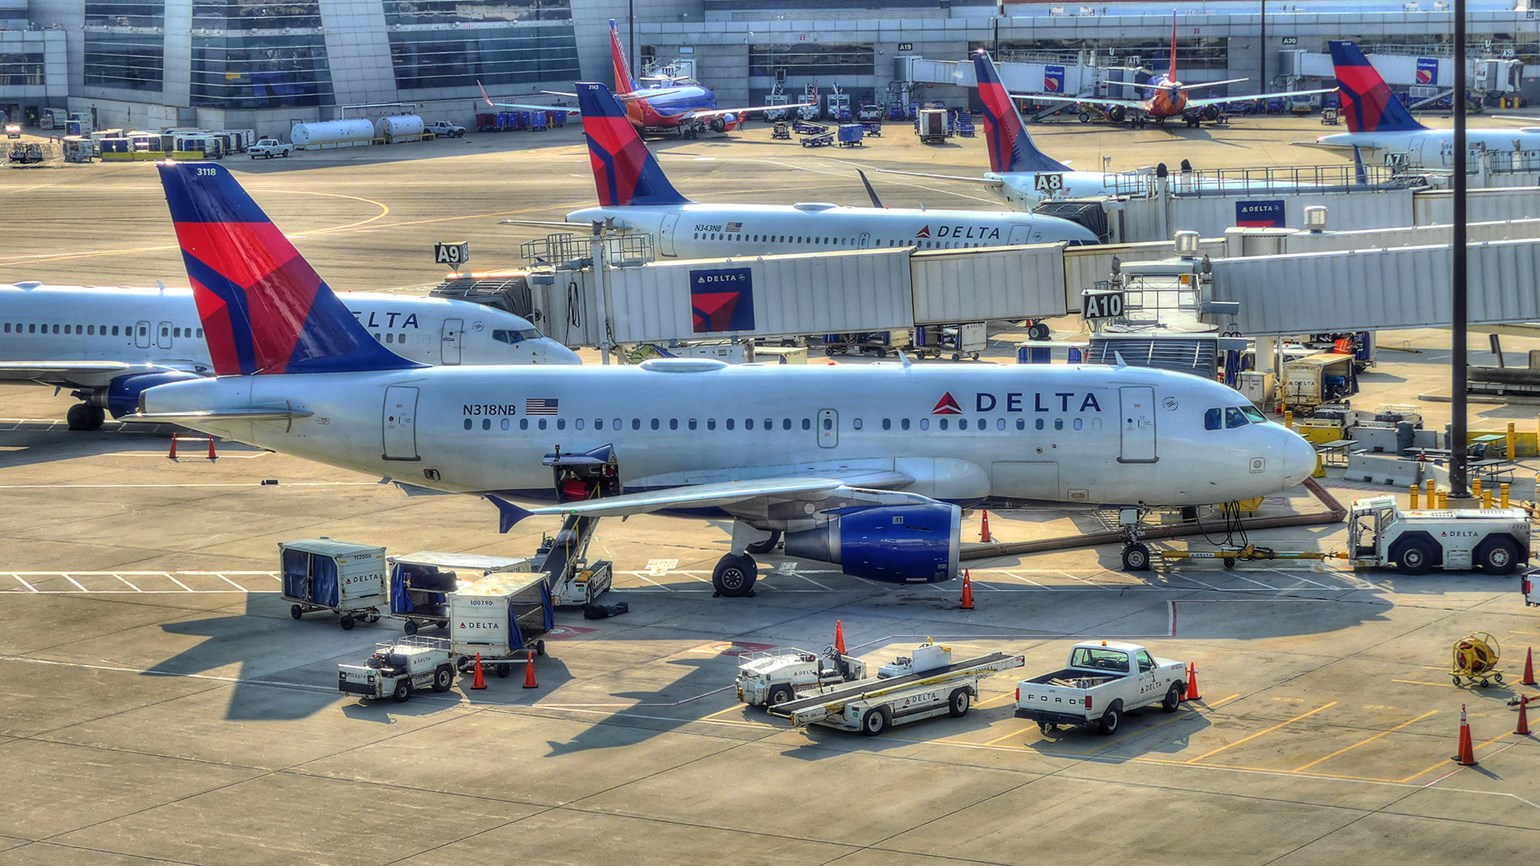 Delta planes in Boston